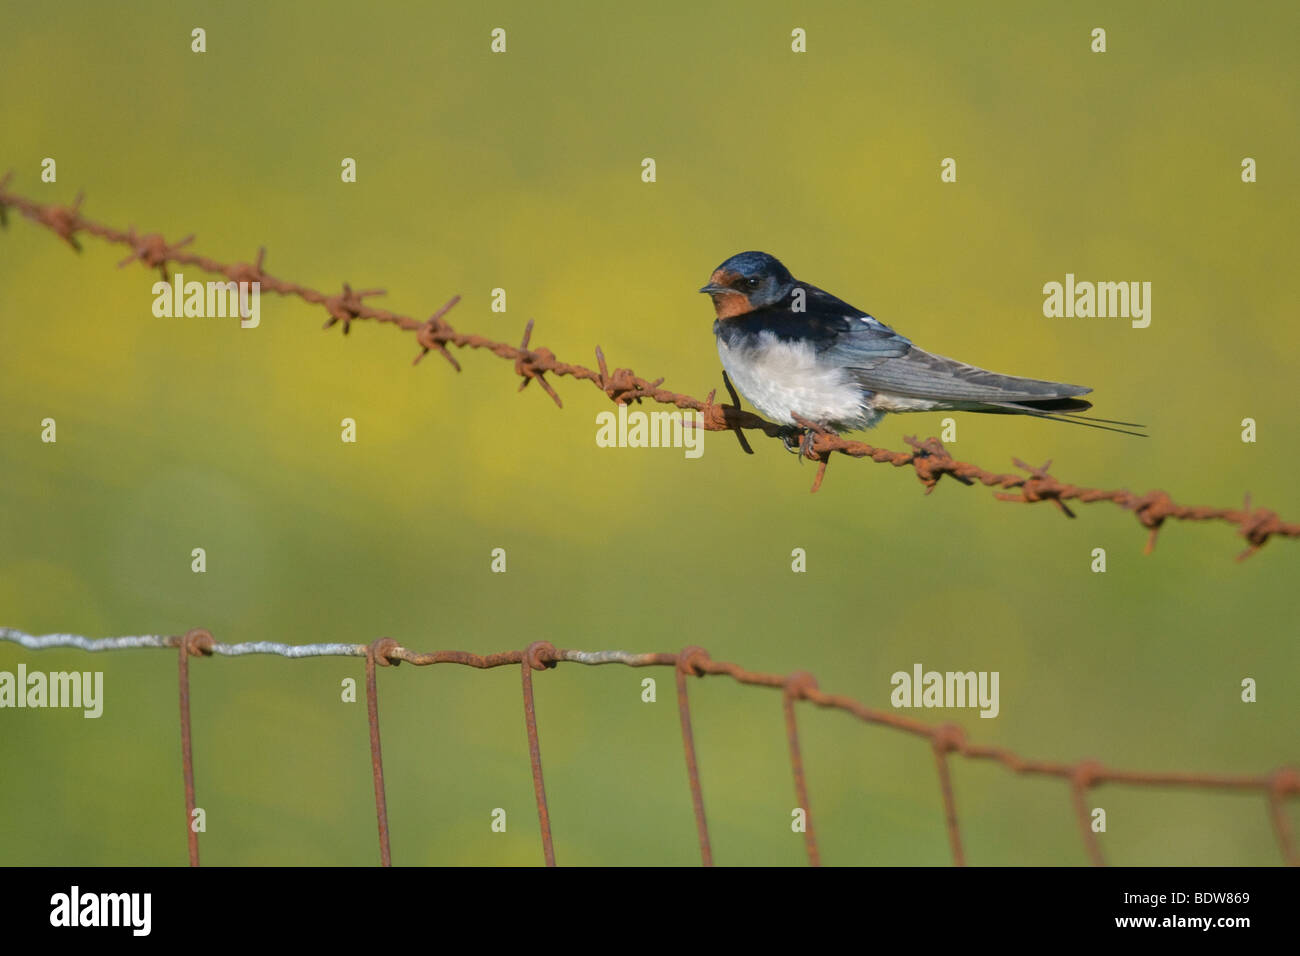 Barn swallow Hirundo rustica perched on rusty barbed wire fence. South Uist, Scotland. - Stock Image